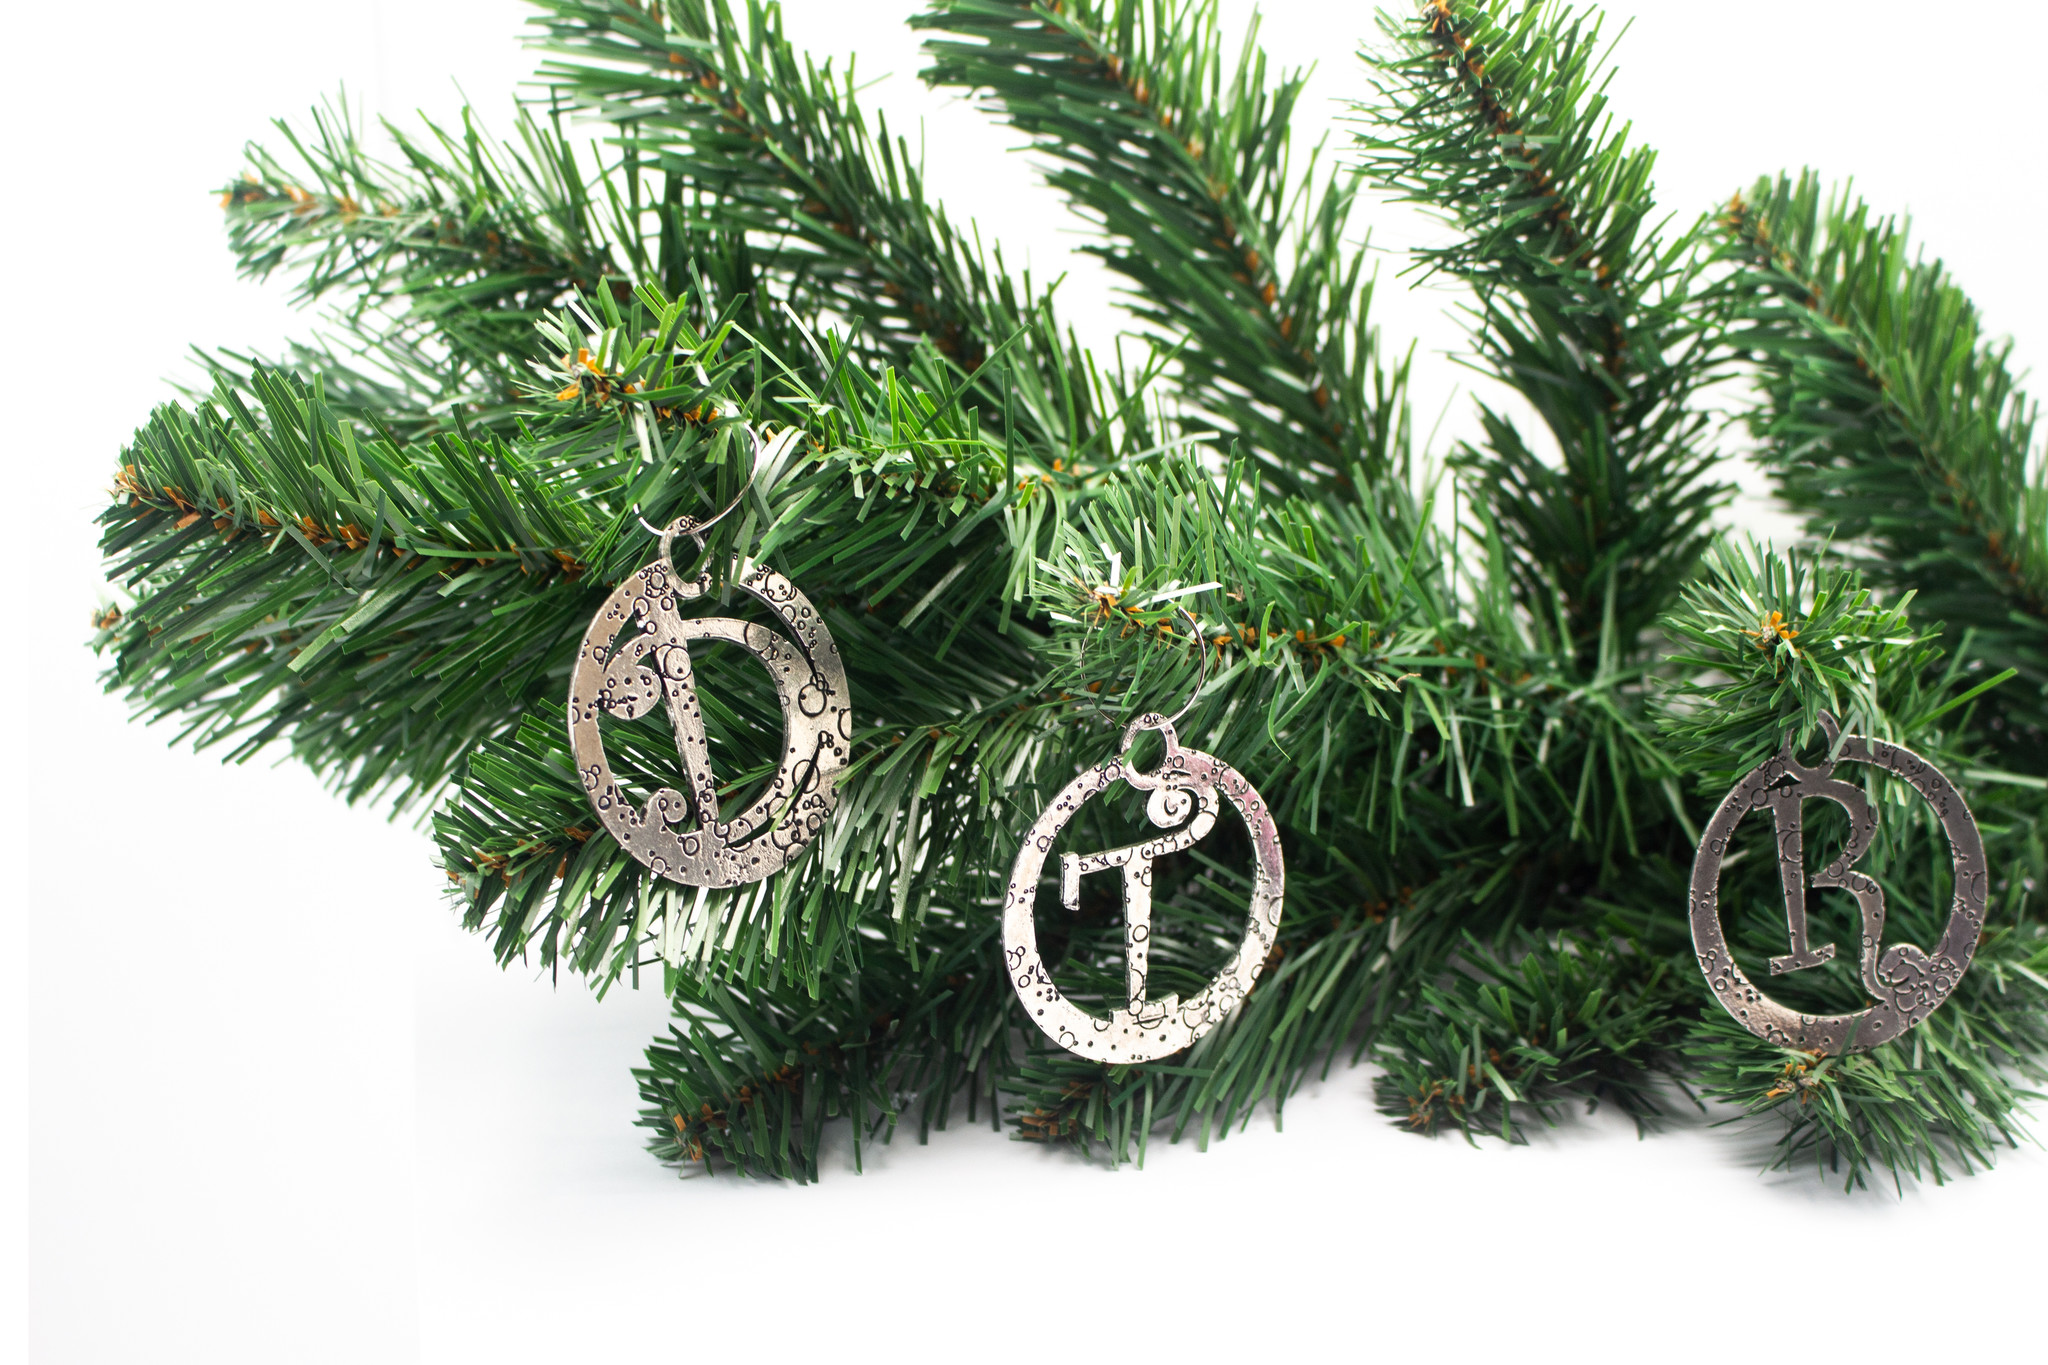 DTR Hanging Christmas ornament wreath with candle